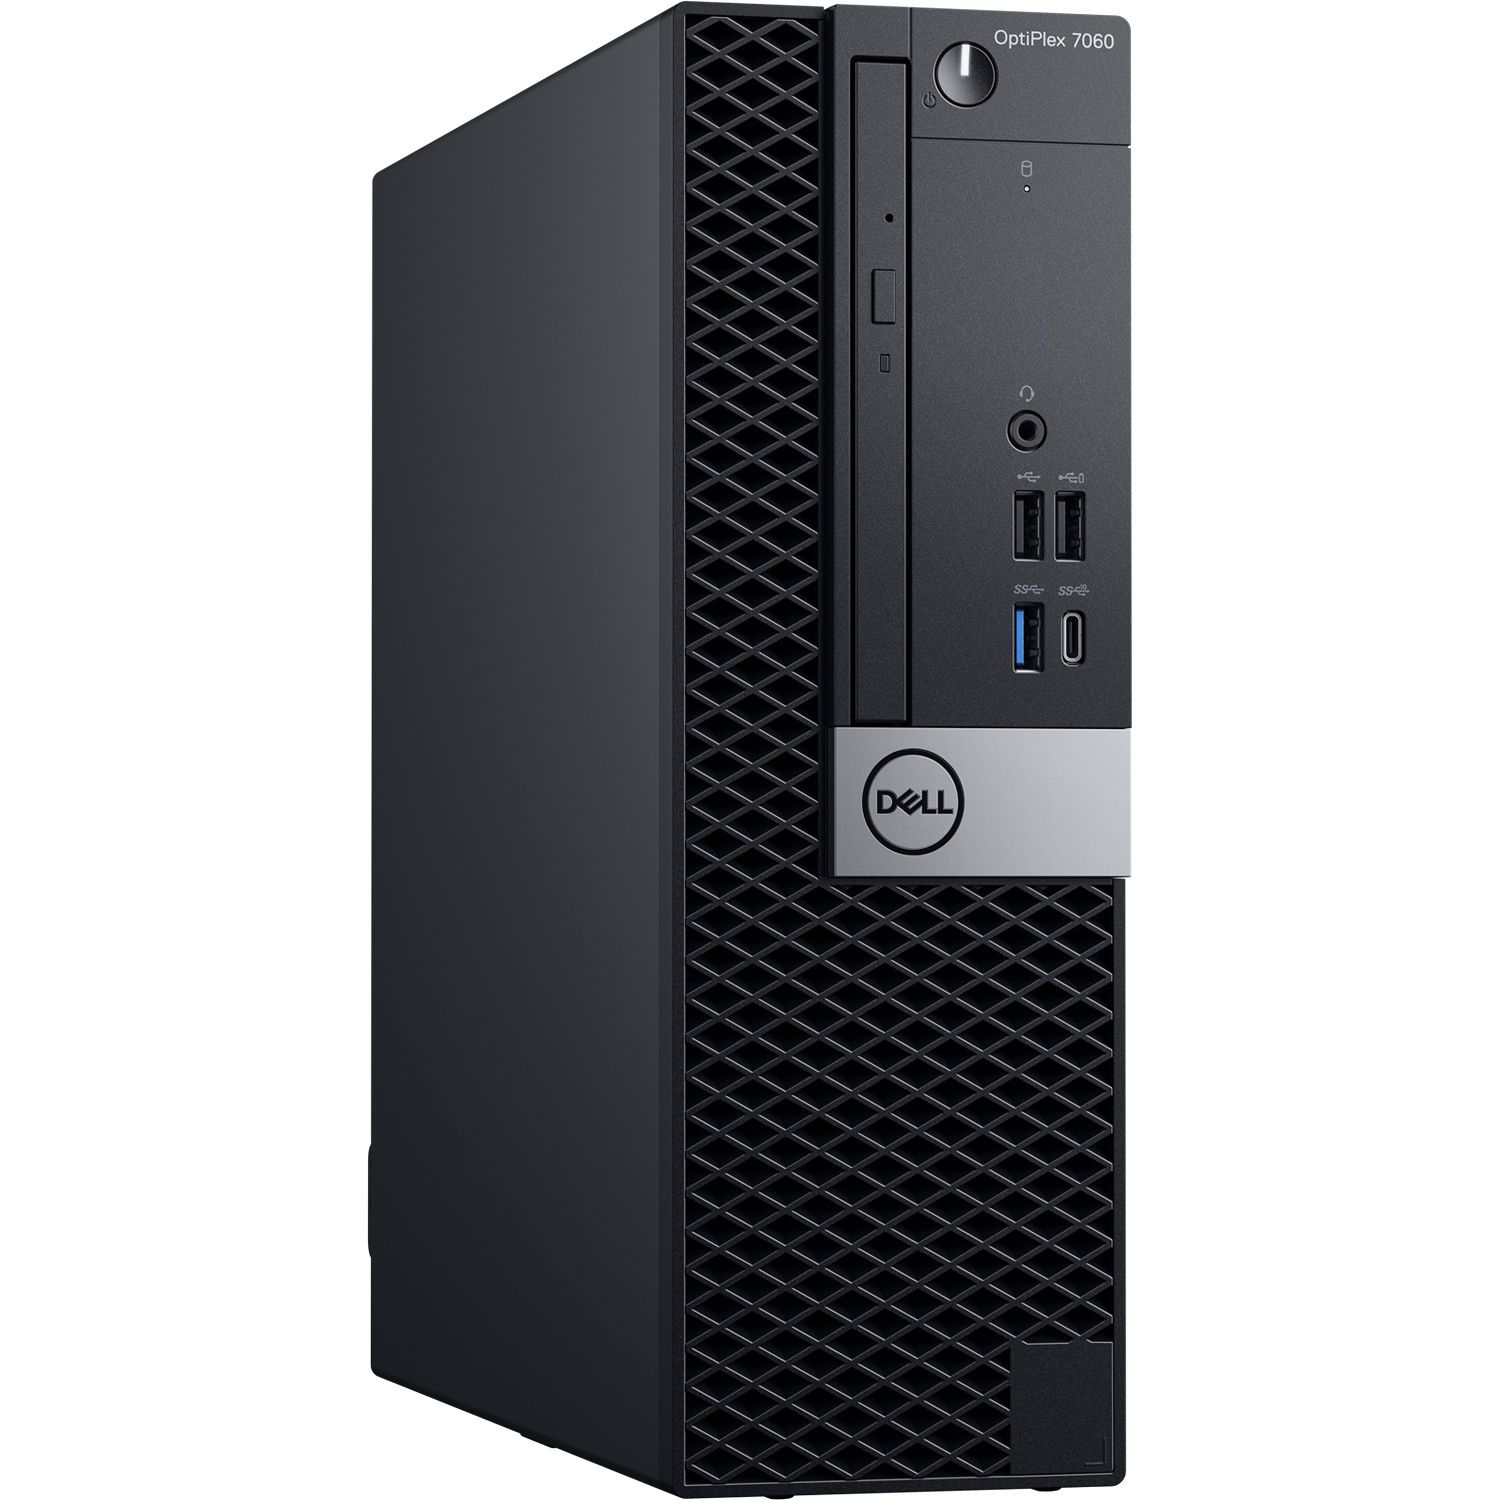 Microcomputador Dell Optiplex Small 3060 I3-8100| 4GB| HD 500GB| Win 10 Pro